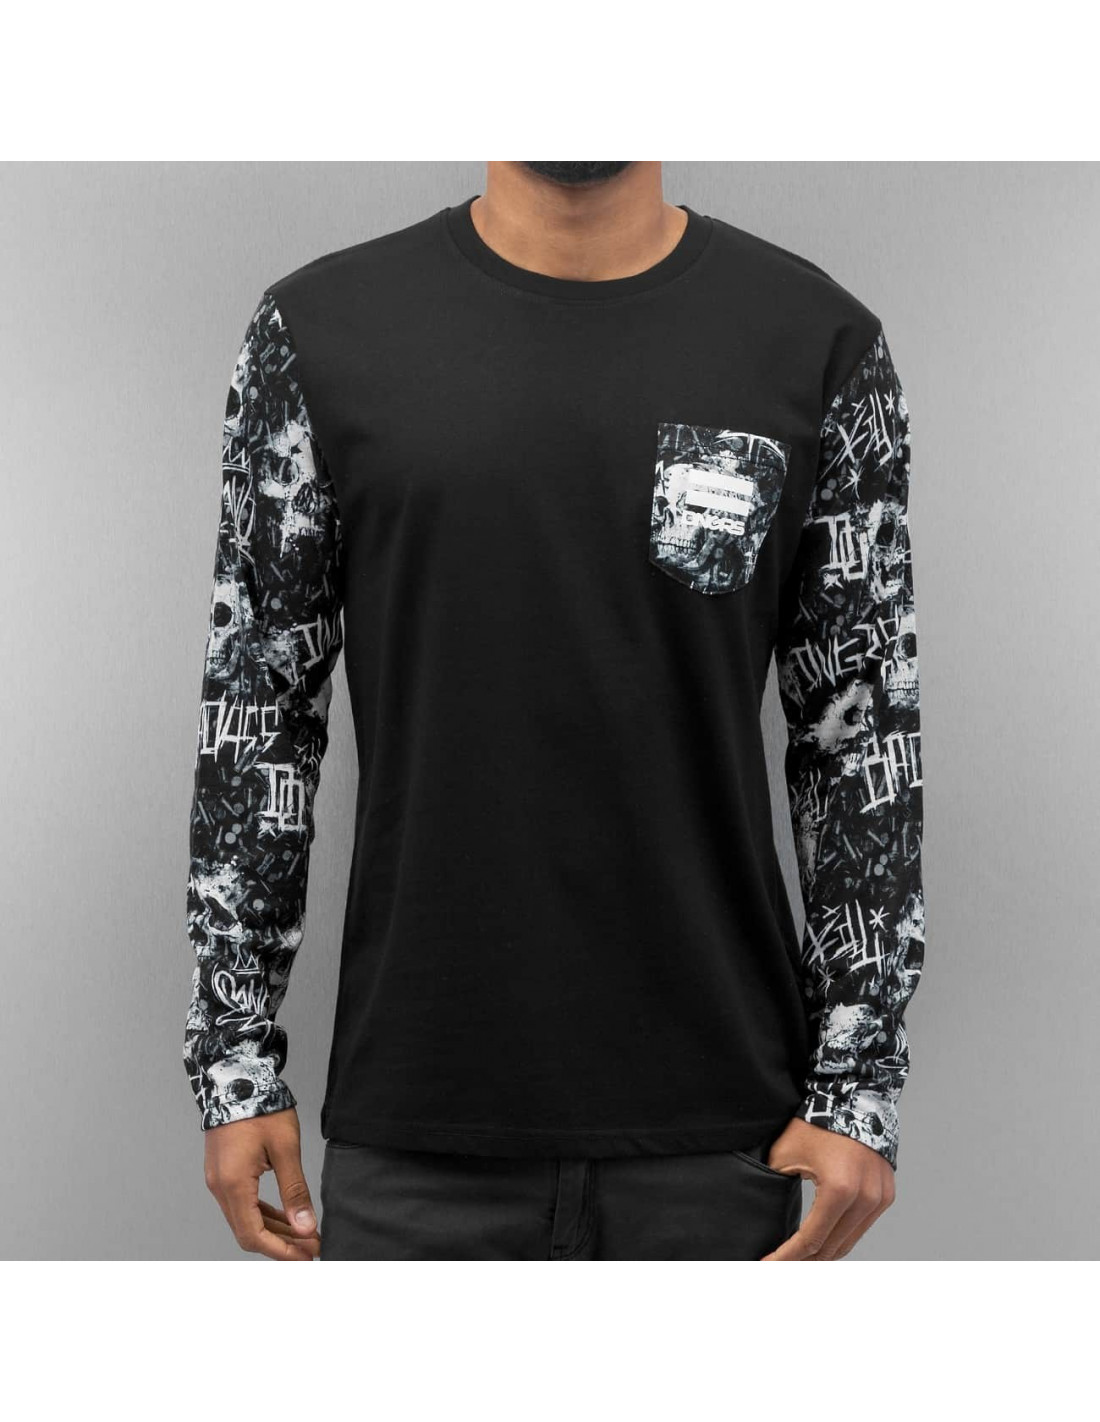 DGNRS Death Tee L/S BlackNWhite